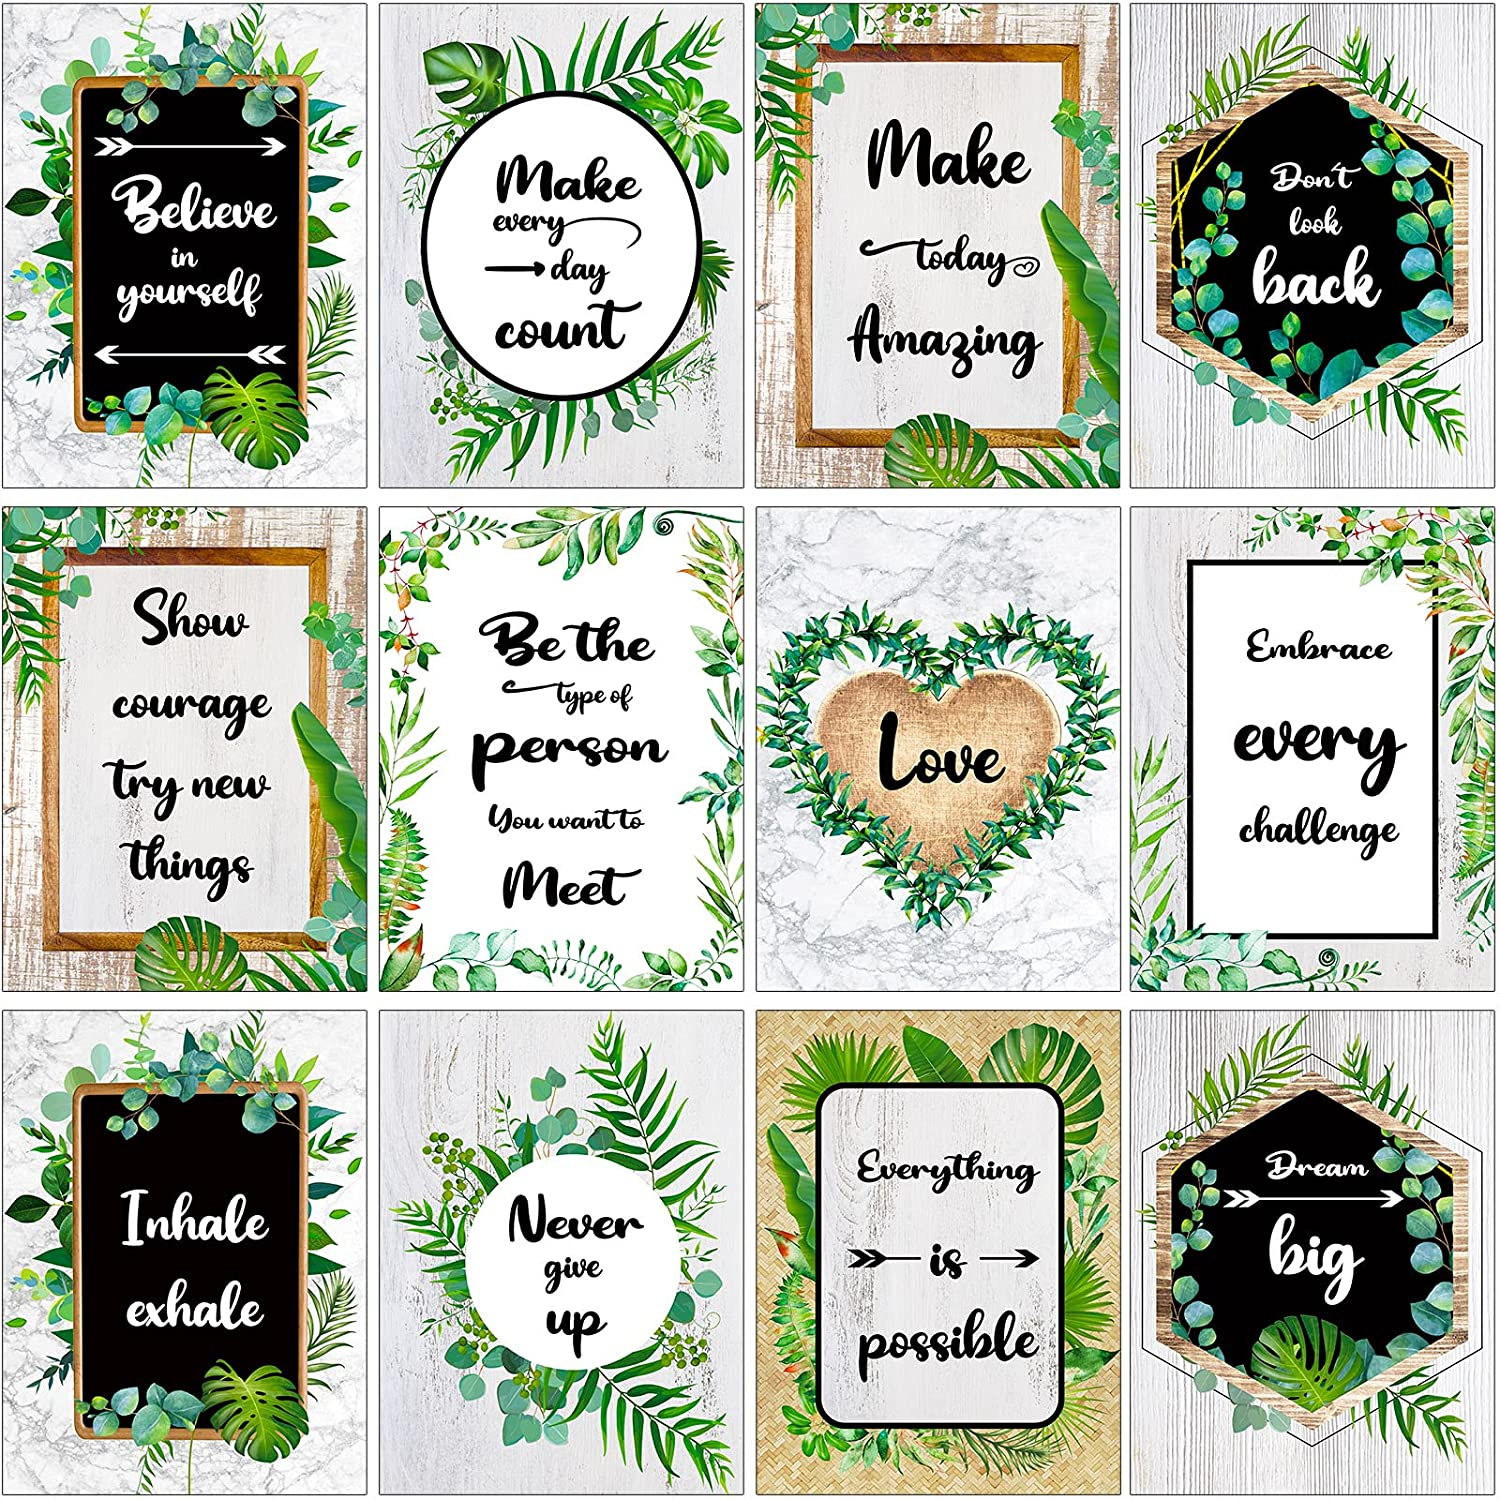 12 Pieces Inspirational Wall Posters Motivational Posters Inspirational Bulletin Board Decorations Simply Boho Poster Positive Quote Wall Poster Art Prints for Office (Classic Style, 11 x 14 Inch)